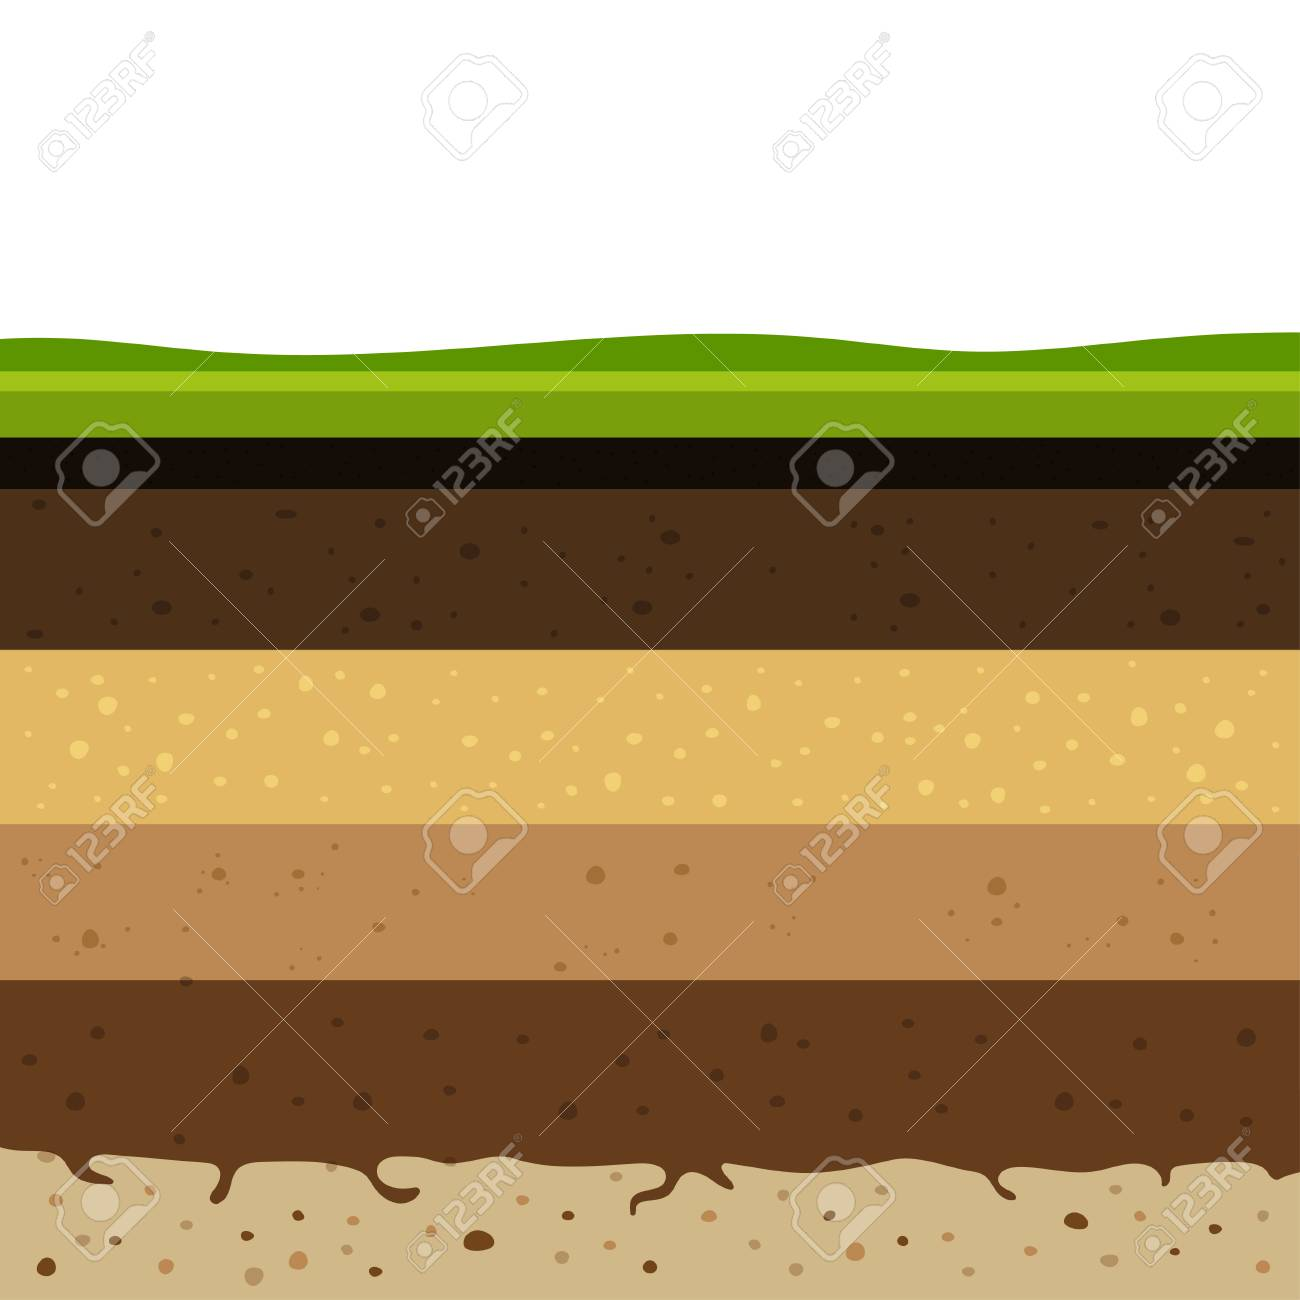 Layers of grass with Underground layers of earth, seamless ground, cut of soil profile with a grass, layers of the earth, clay and stones, ground water - 112954769